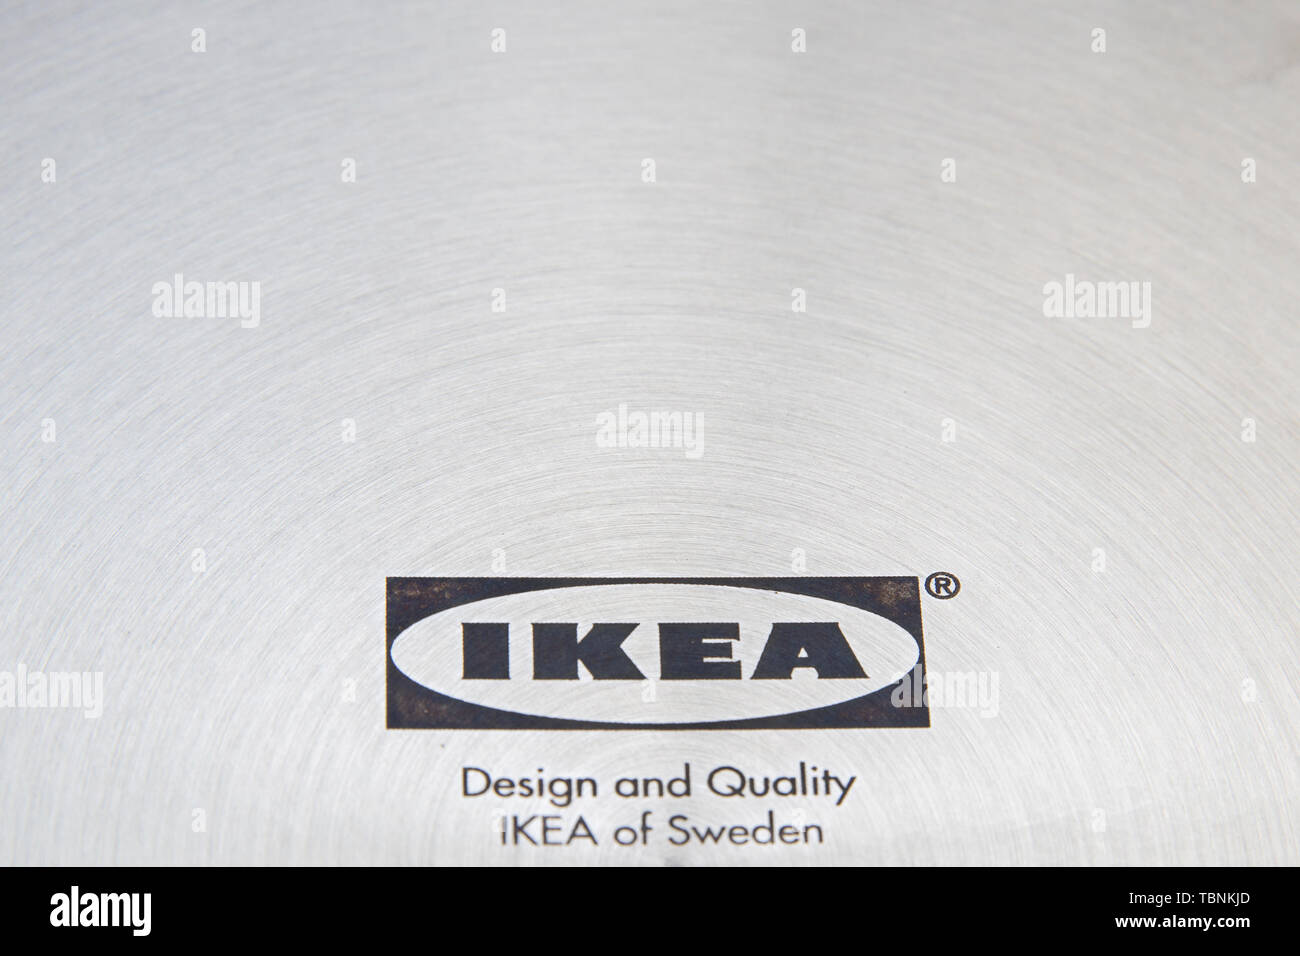 Ikea Grenoble Catalogue Furnishing Retailer Stock Photos Furnishing Retailer Stock